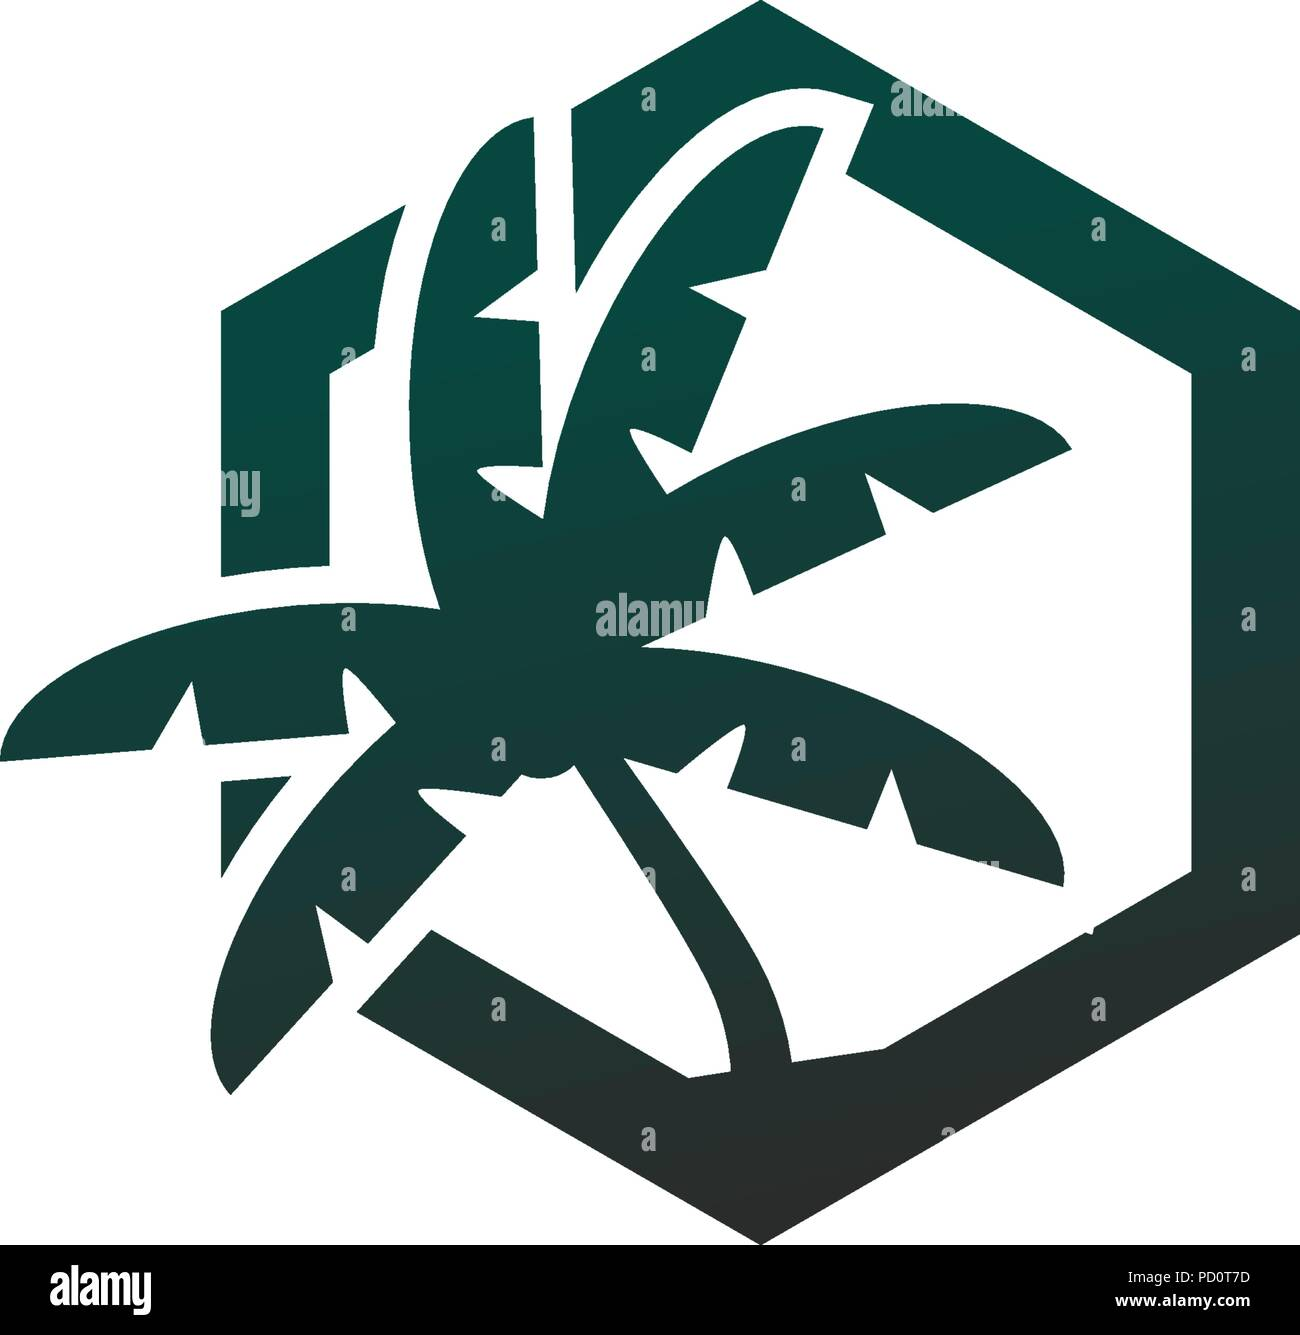 palm tree logo design concept vector template stock vector art